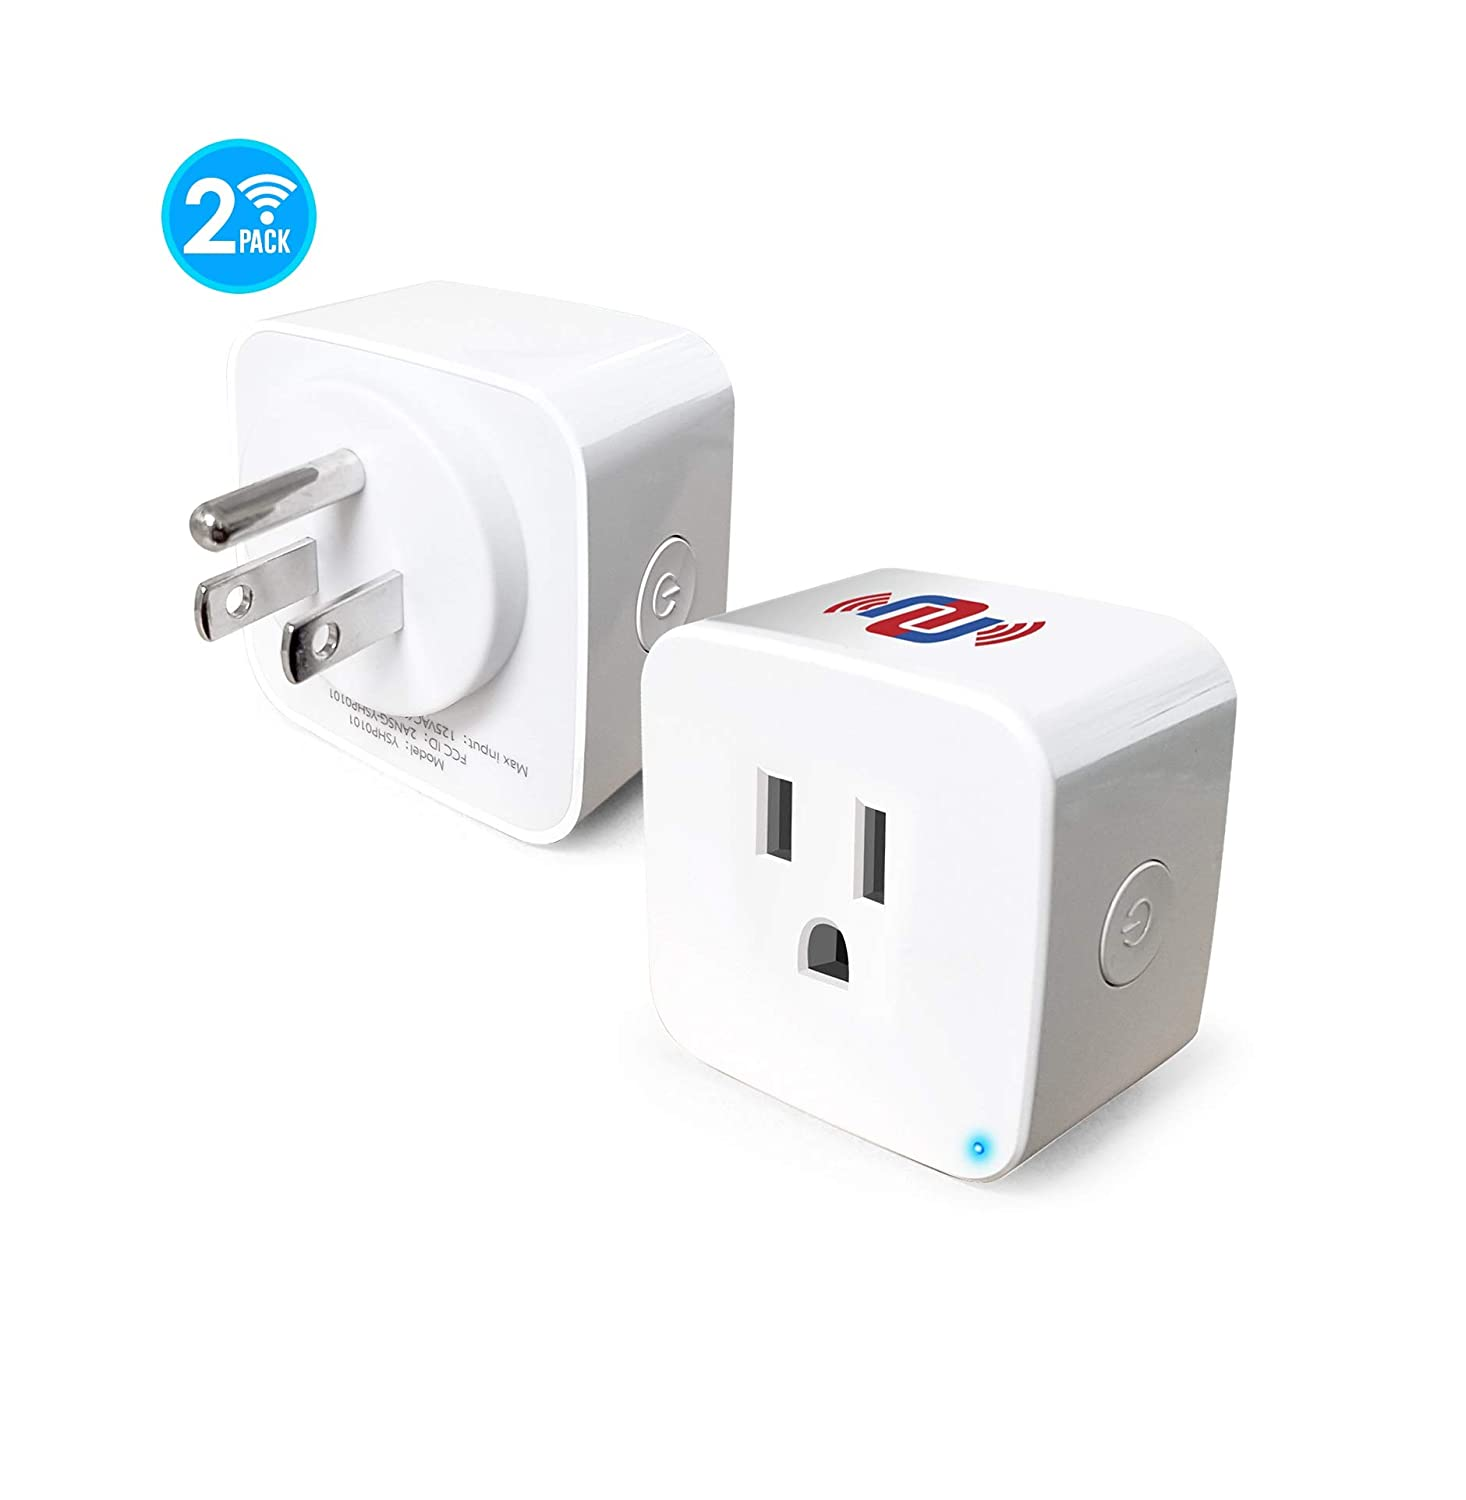 NUNET Smart WiFi Plug 2 Packs 10A Mini Smart Outlet with Energy Monitor, Work with Amazon Alexa, Google Home, No Hub Required, Support High Power Appliances, Remote Control and Timing Functions (Pair)